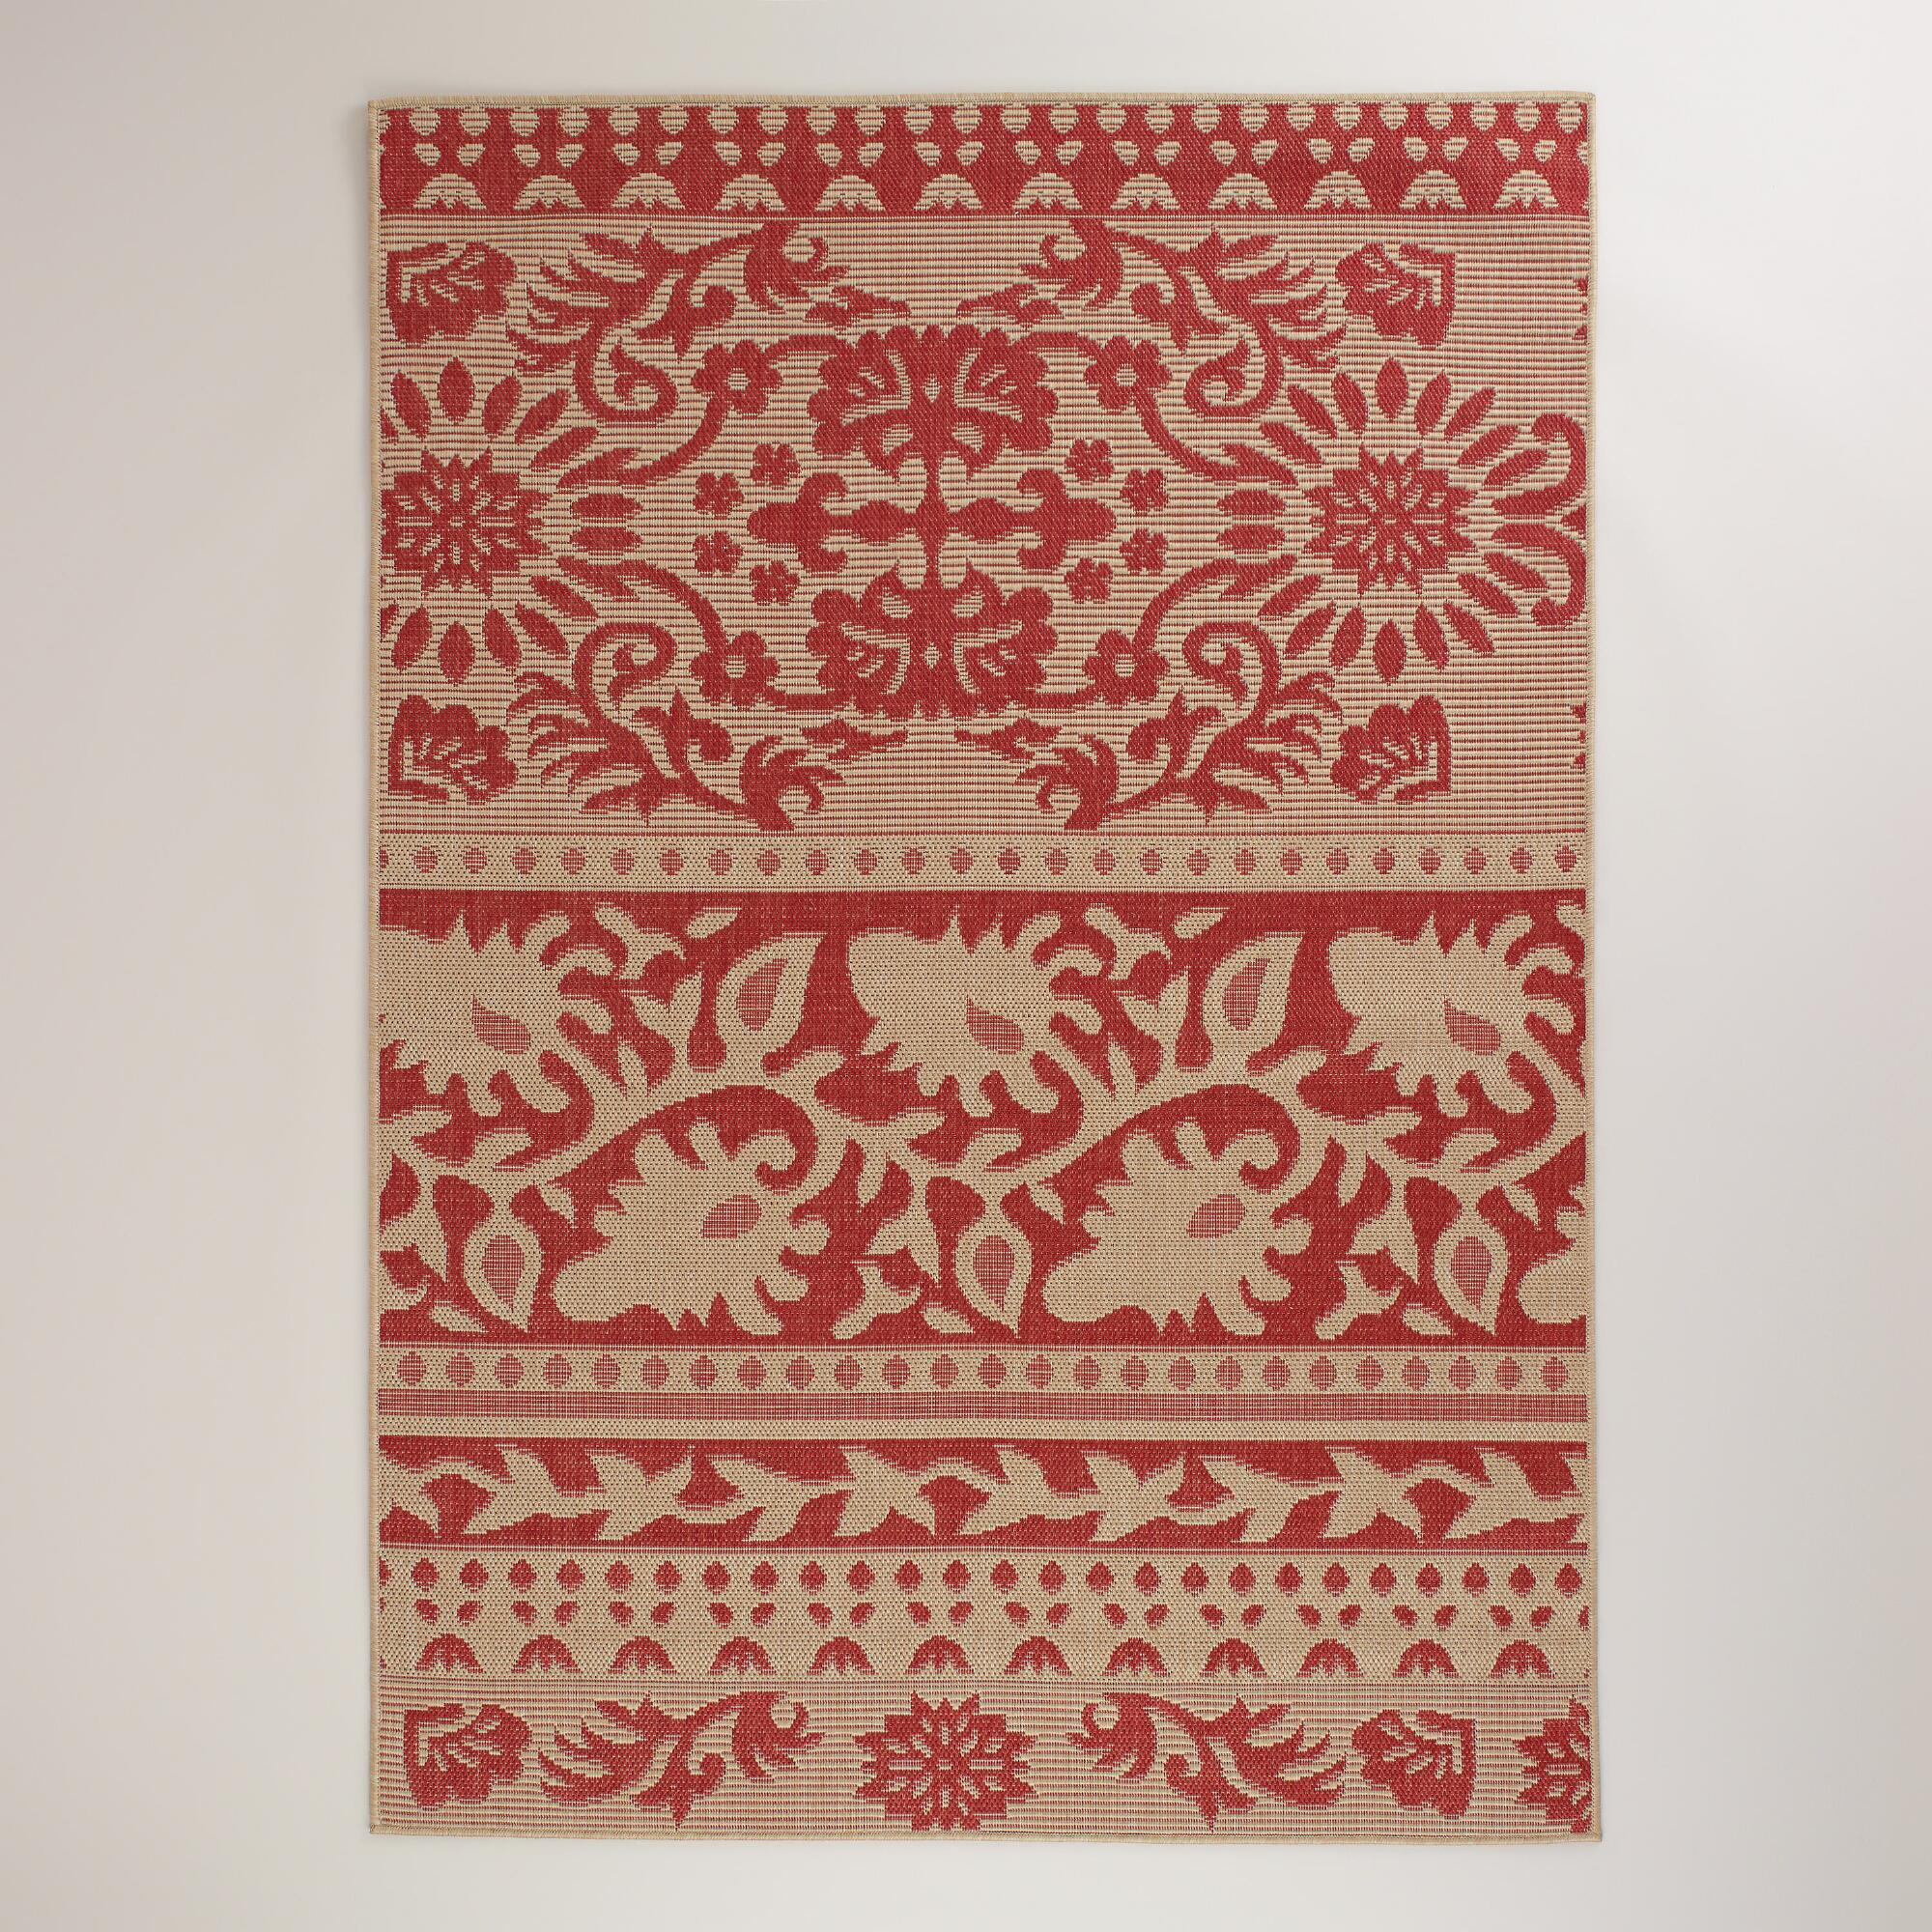 5'x7' Red Ban Thai Indoor-Outdoor Rug | World Market - photo#9